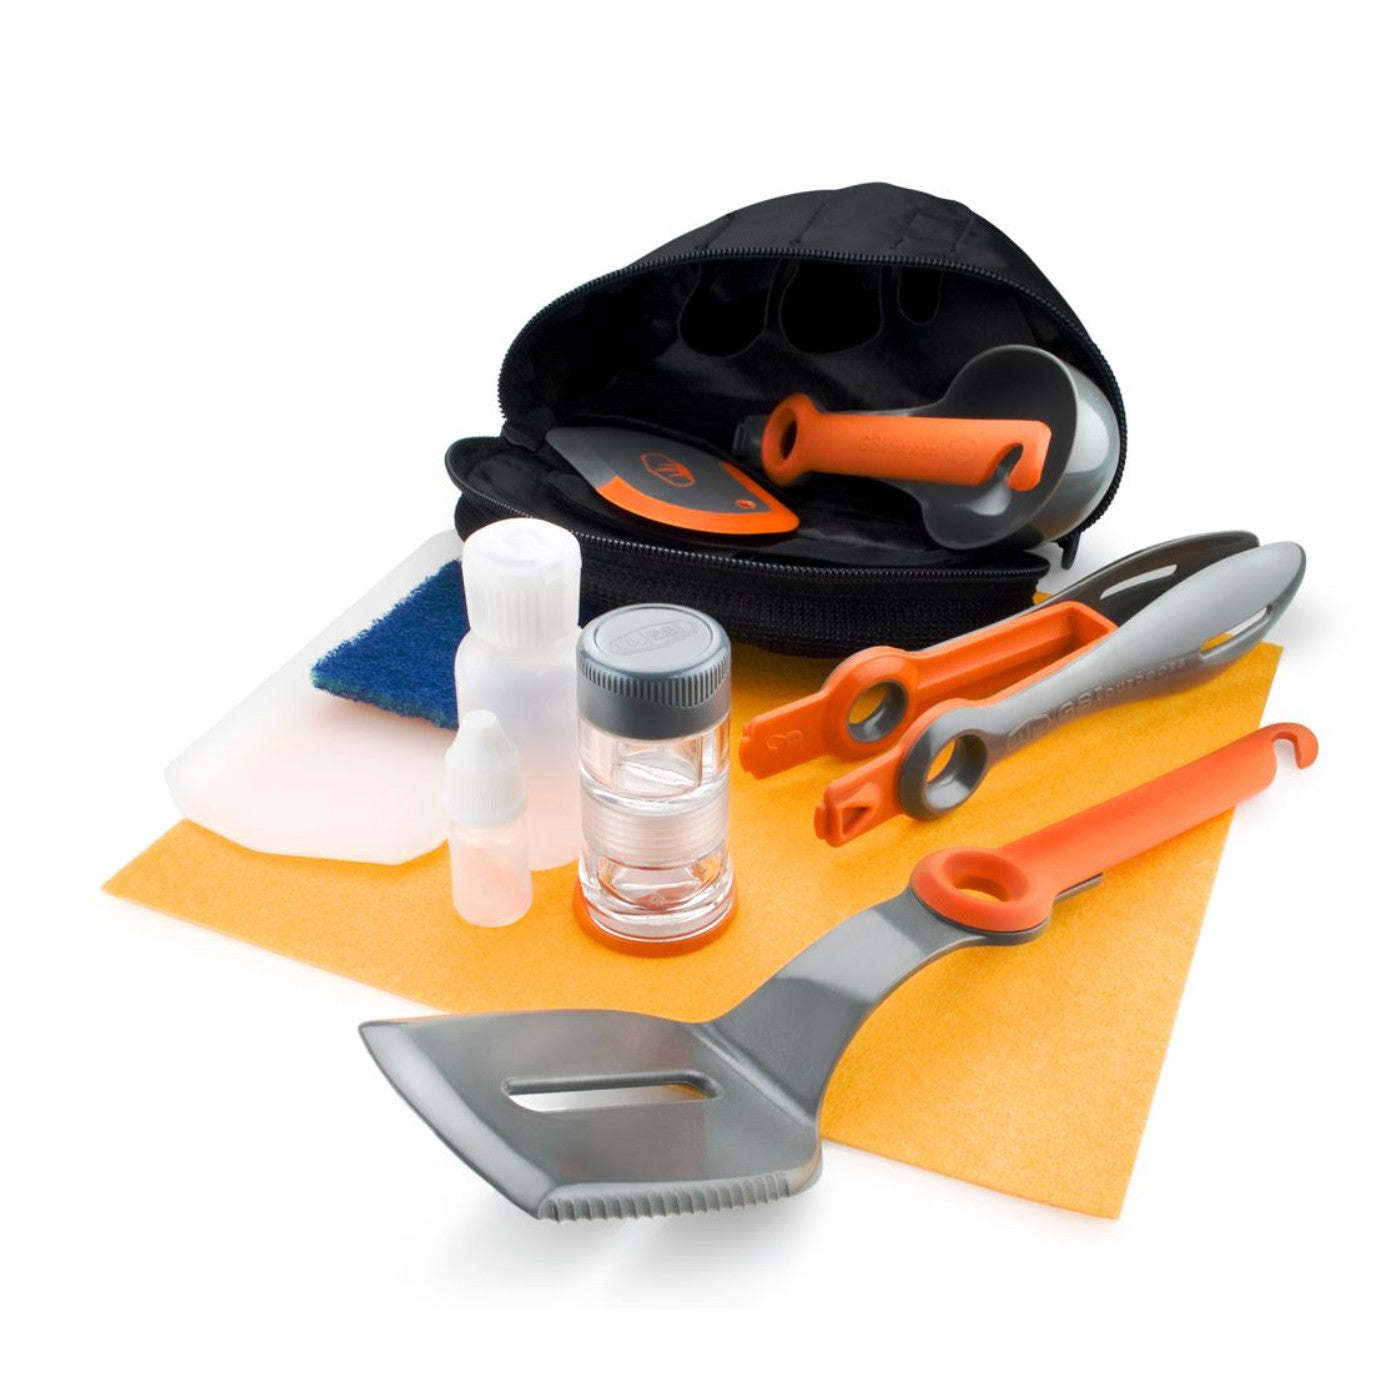 GSI Crossover Kitchen Kit, showing full contents in and outside the storage sack